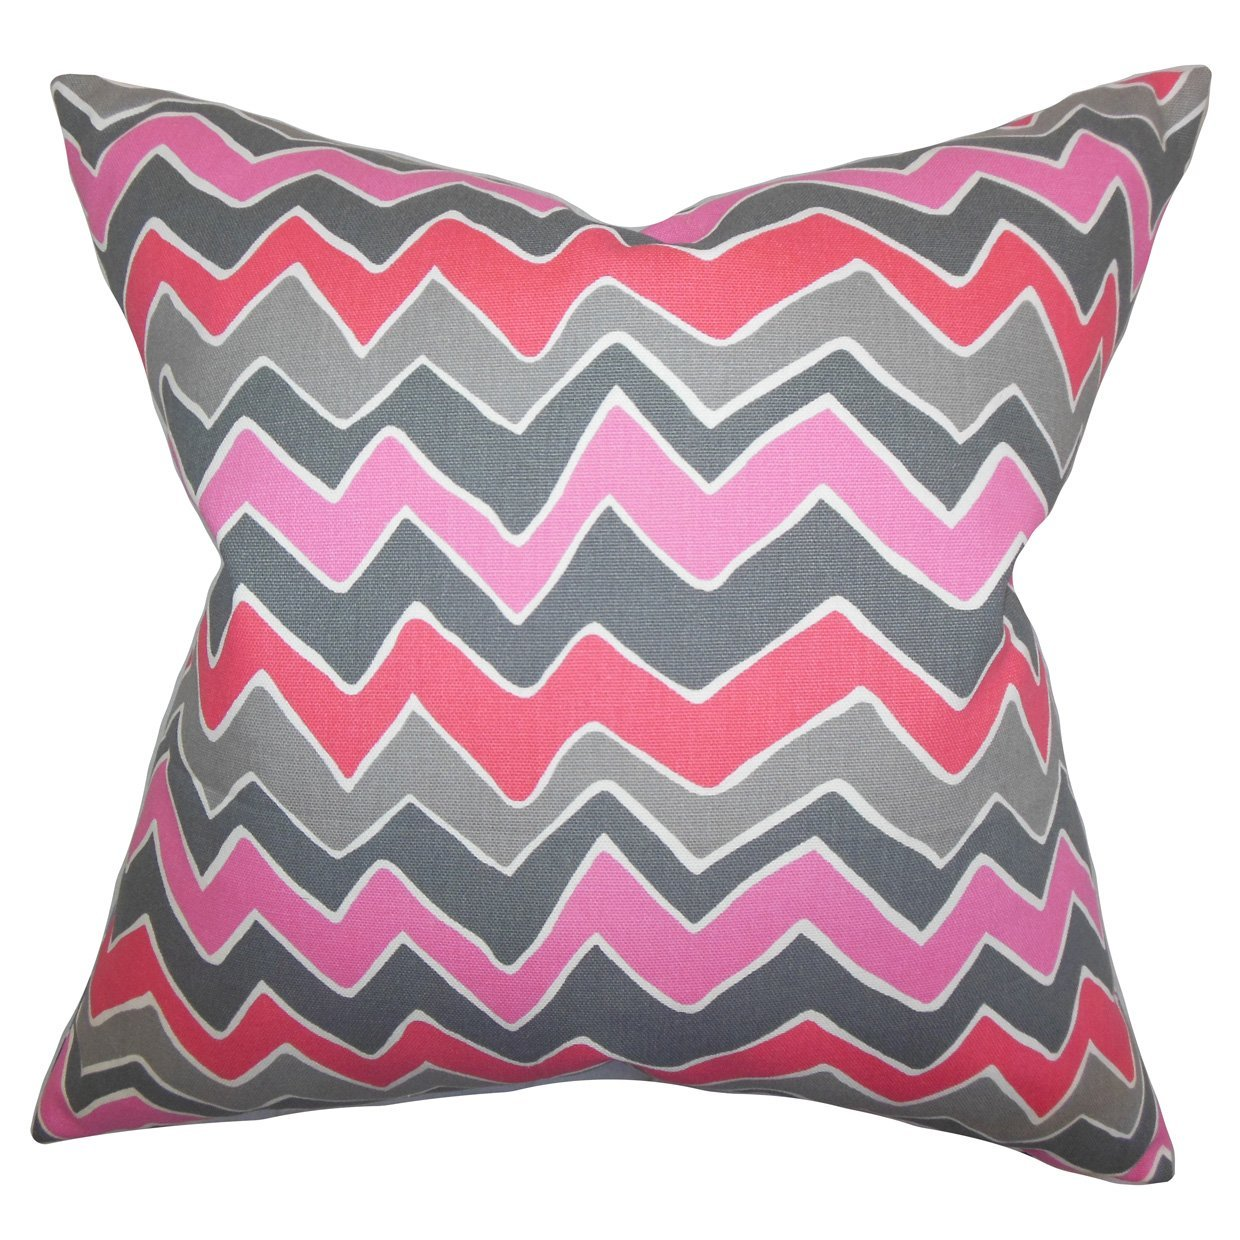 The Pillow Collection P18FLAT-PP-SEESAW-FLAMINGO-C100 Achsah Zigzag Throw Pillow Cover 18 x 18